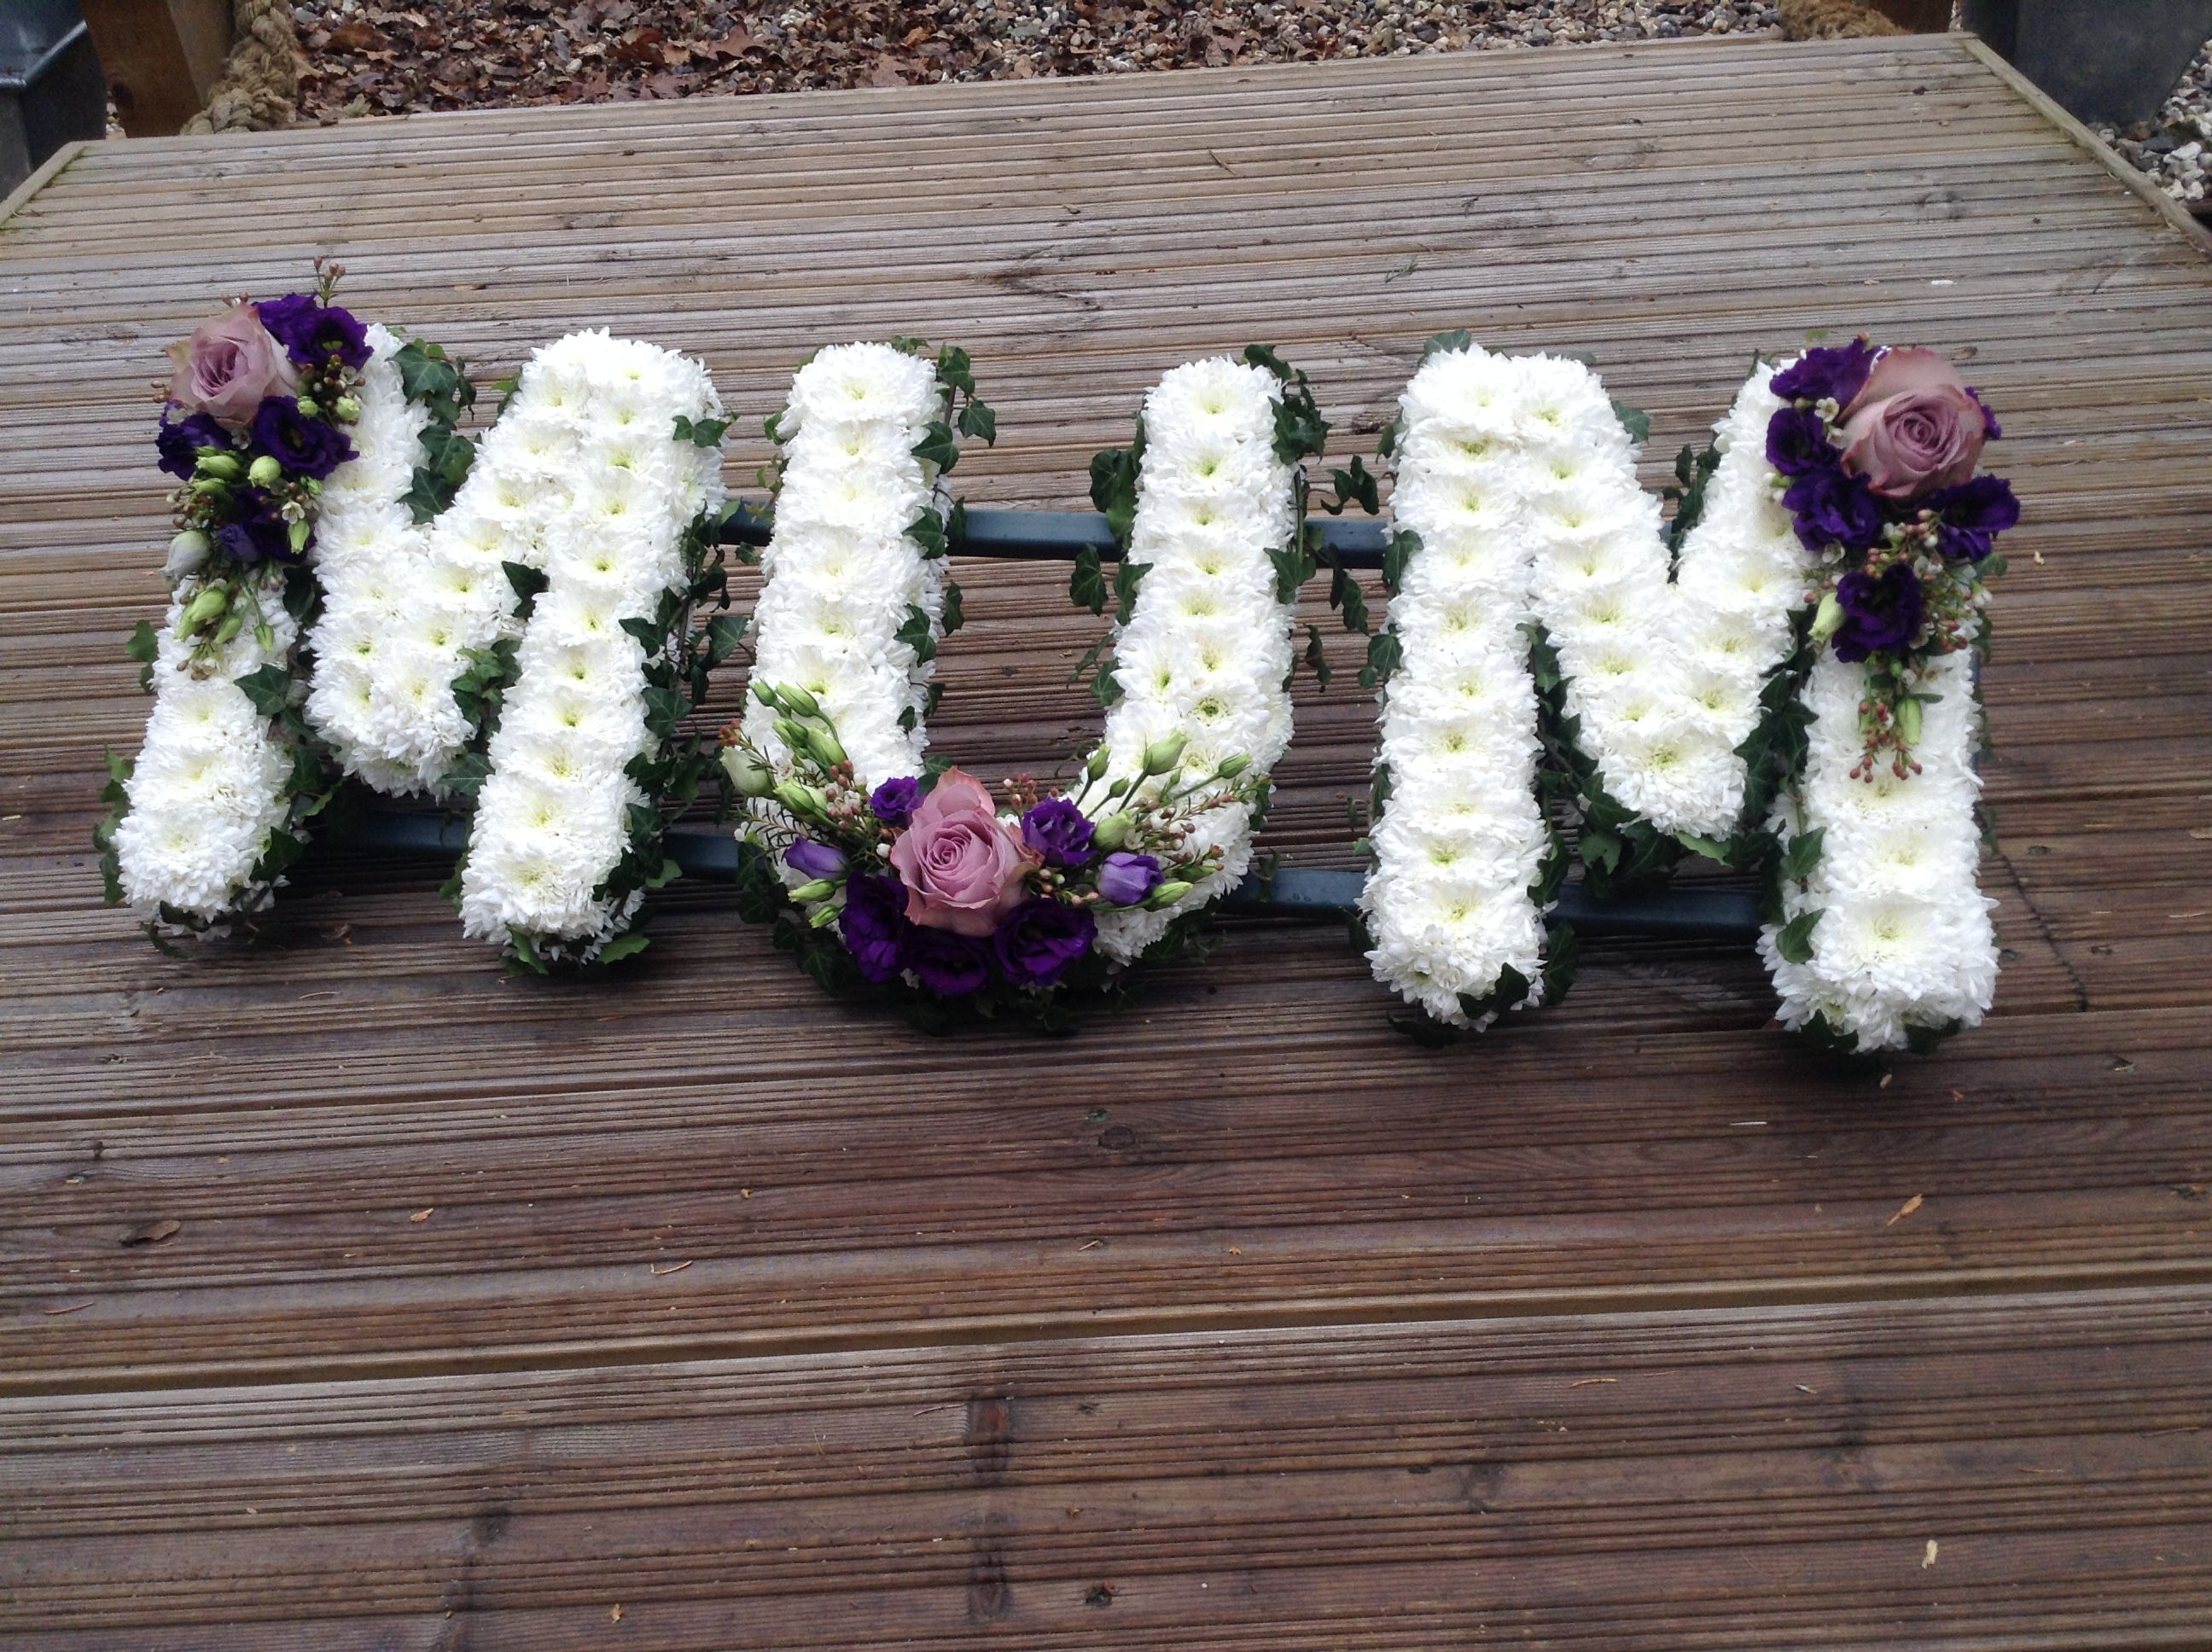 Mum Funeral Flower Letter Tribute With Ivy Edging And Lilac Sprays